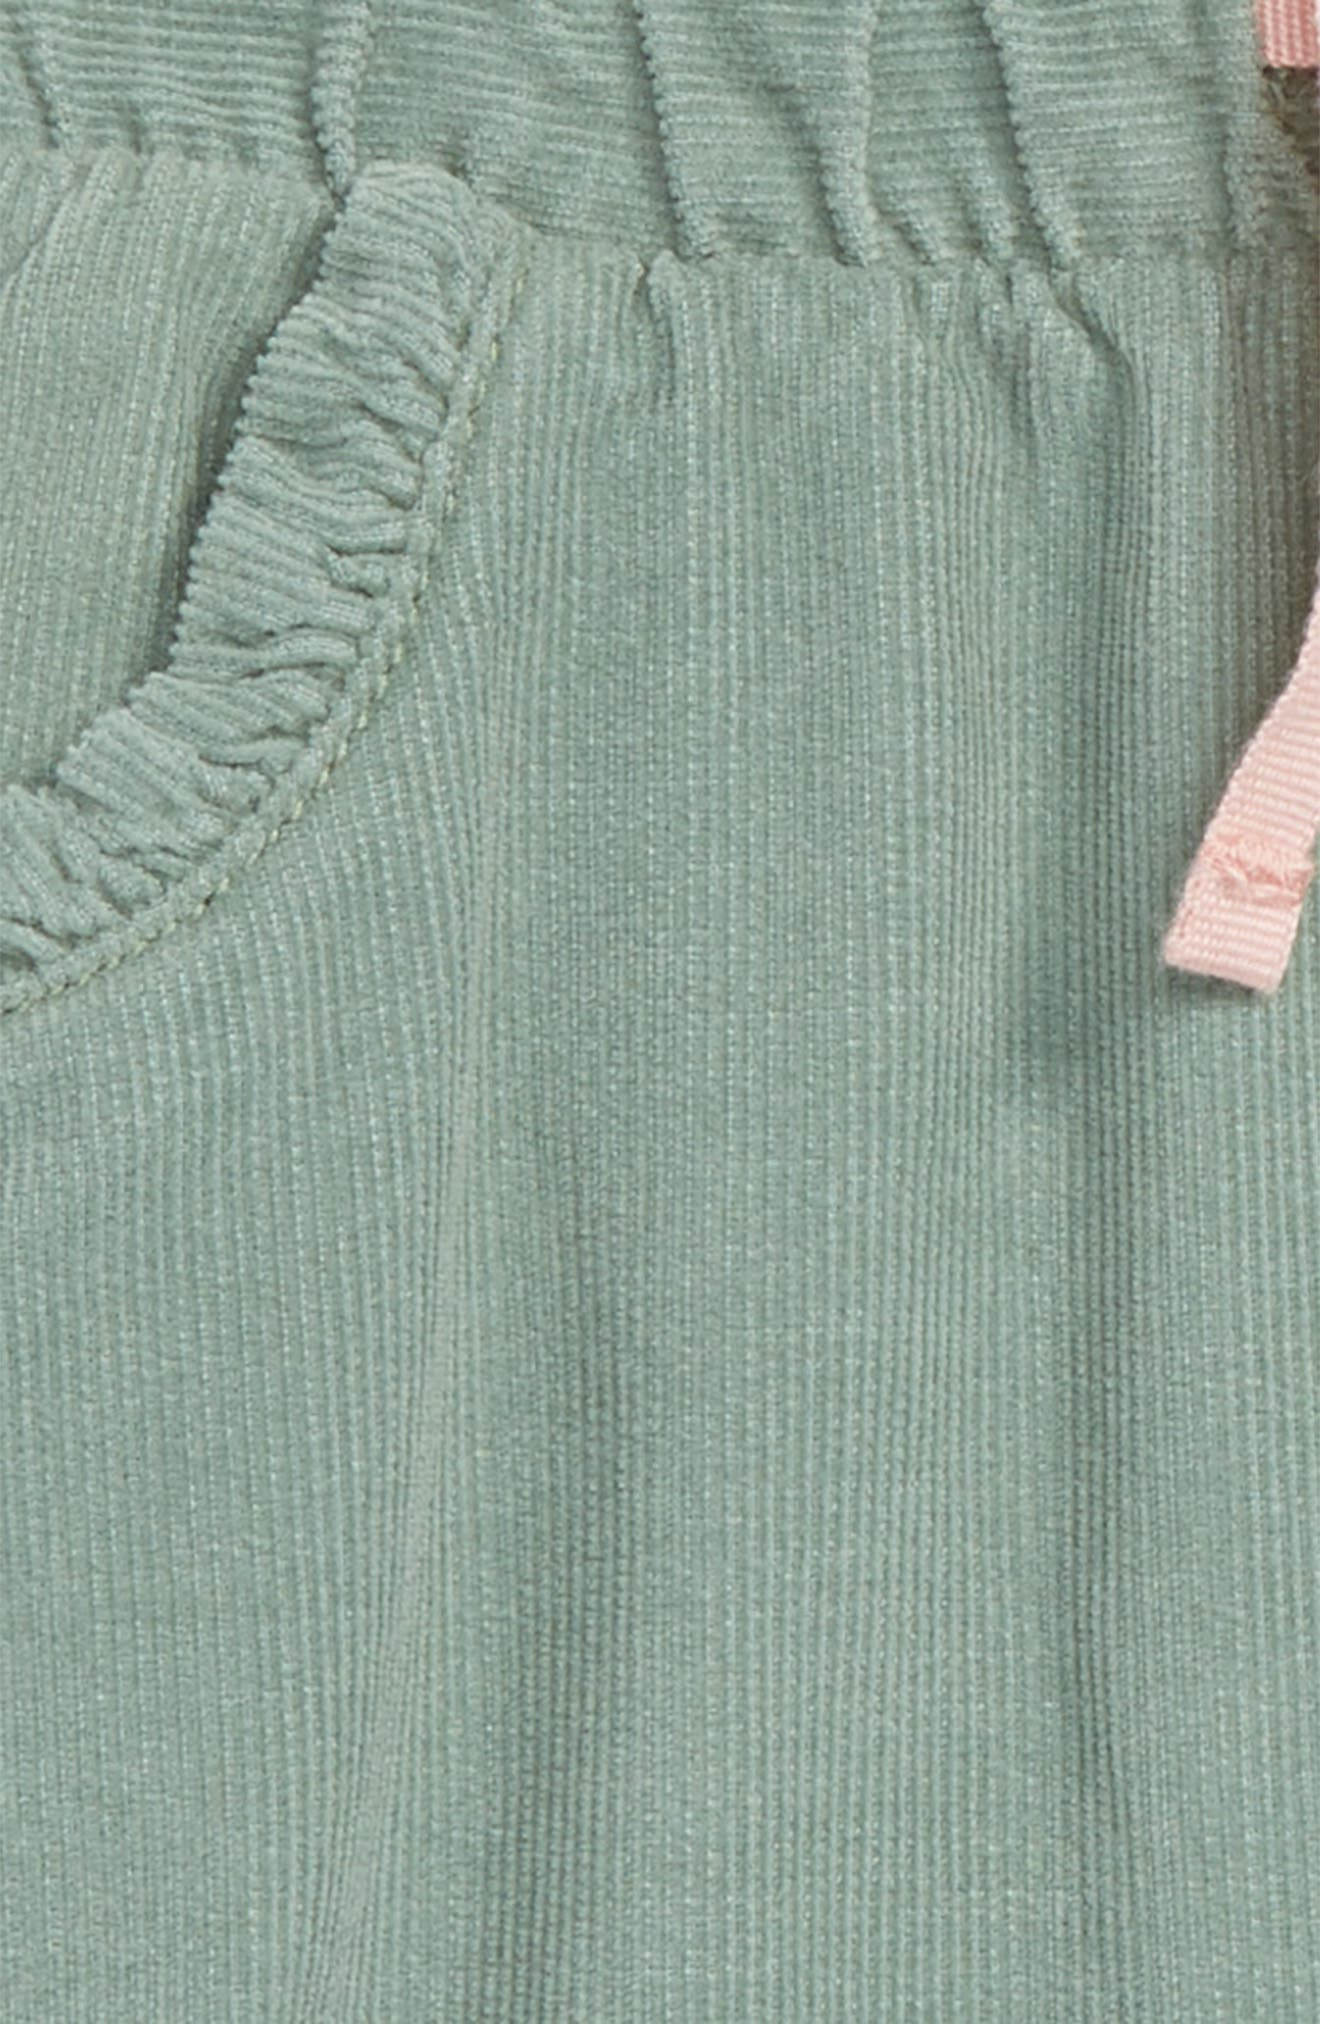 Appliqué Pocket Pants,                             Alternate thumbnail 3, color,                             PIXIE GREEN/ BIRD